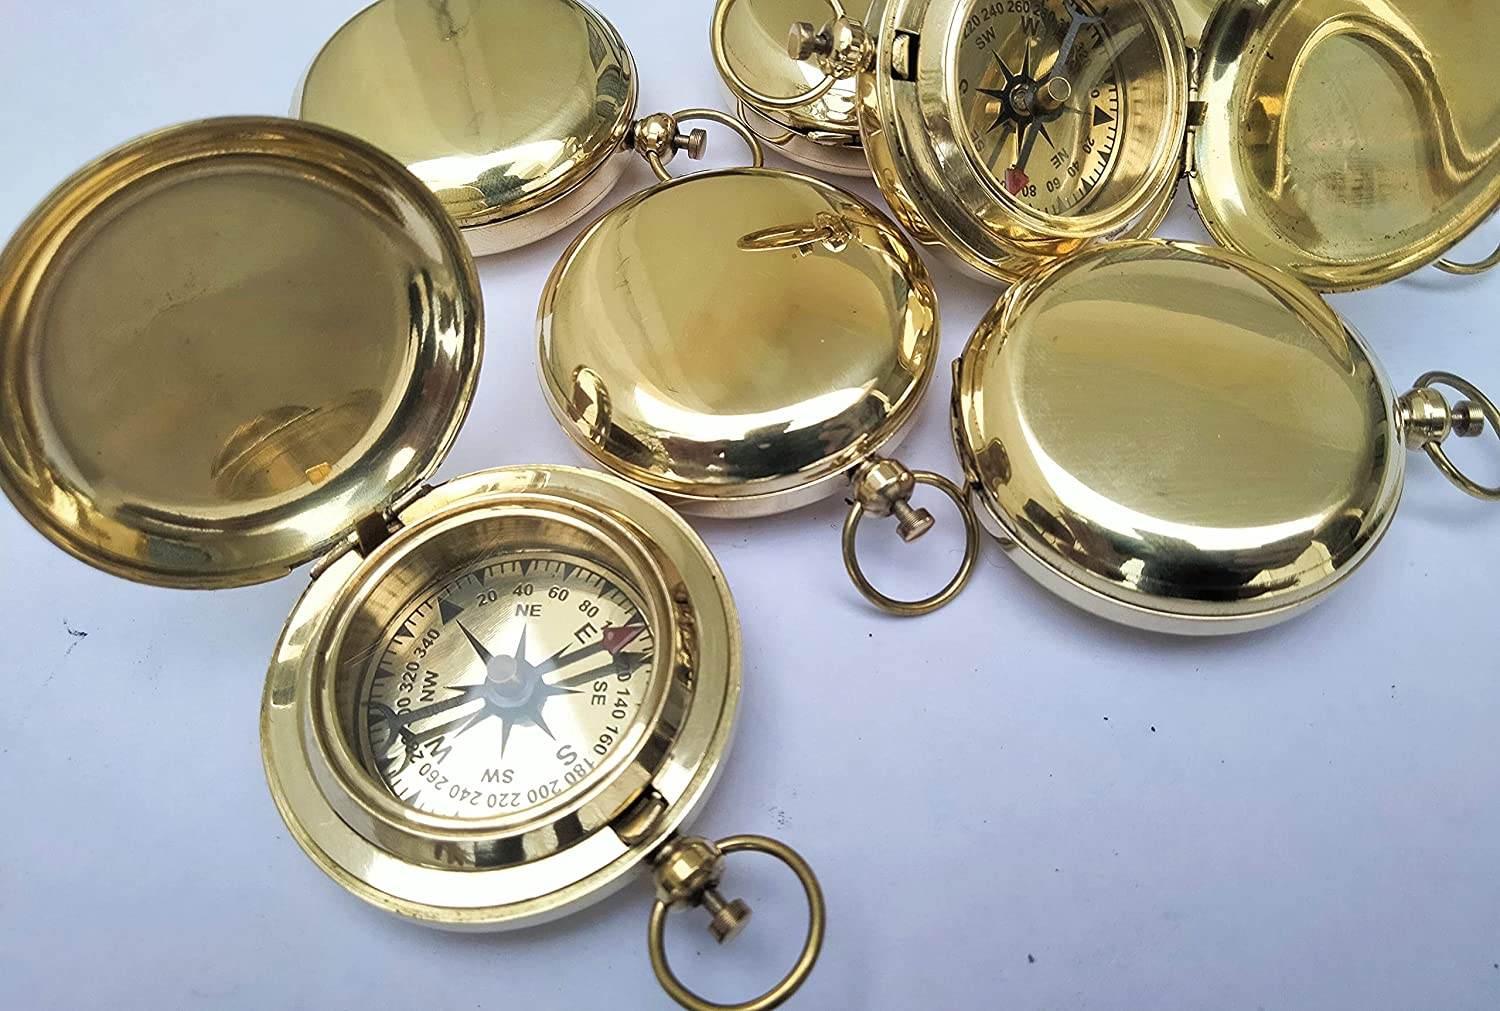 Vintage Flipout Compass Set of Many popular brands 6 Push Pocket Discount is also underway Compas Brass Button